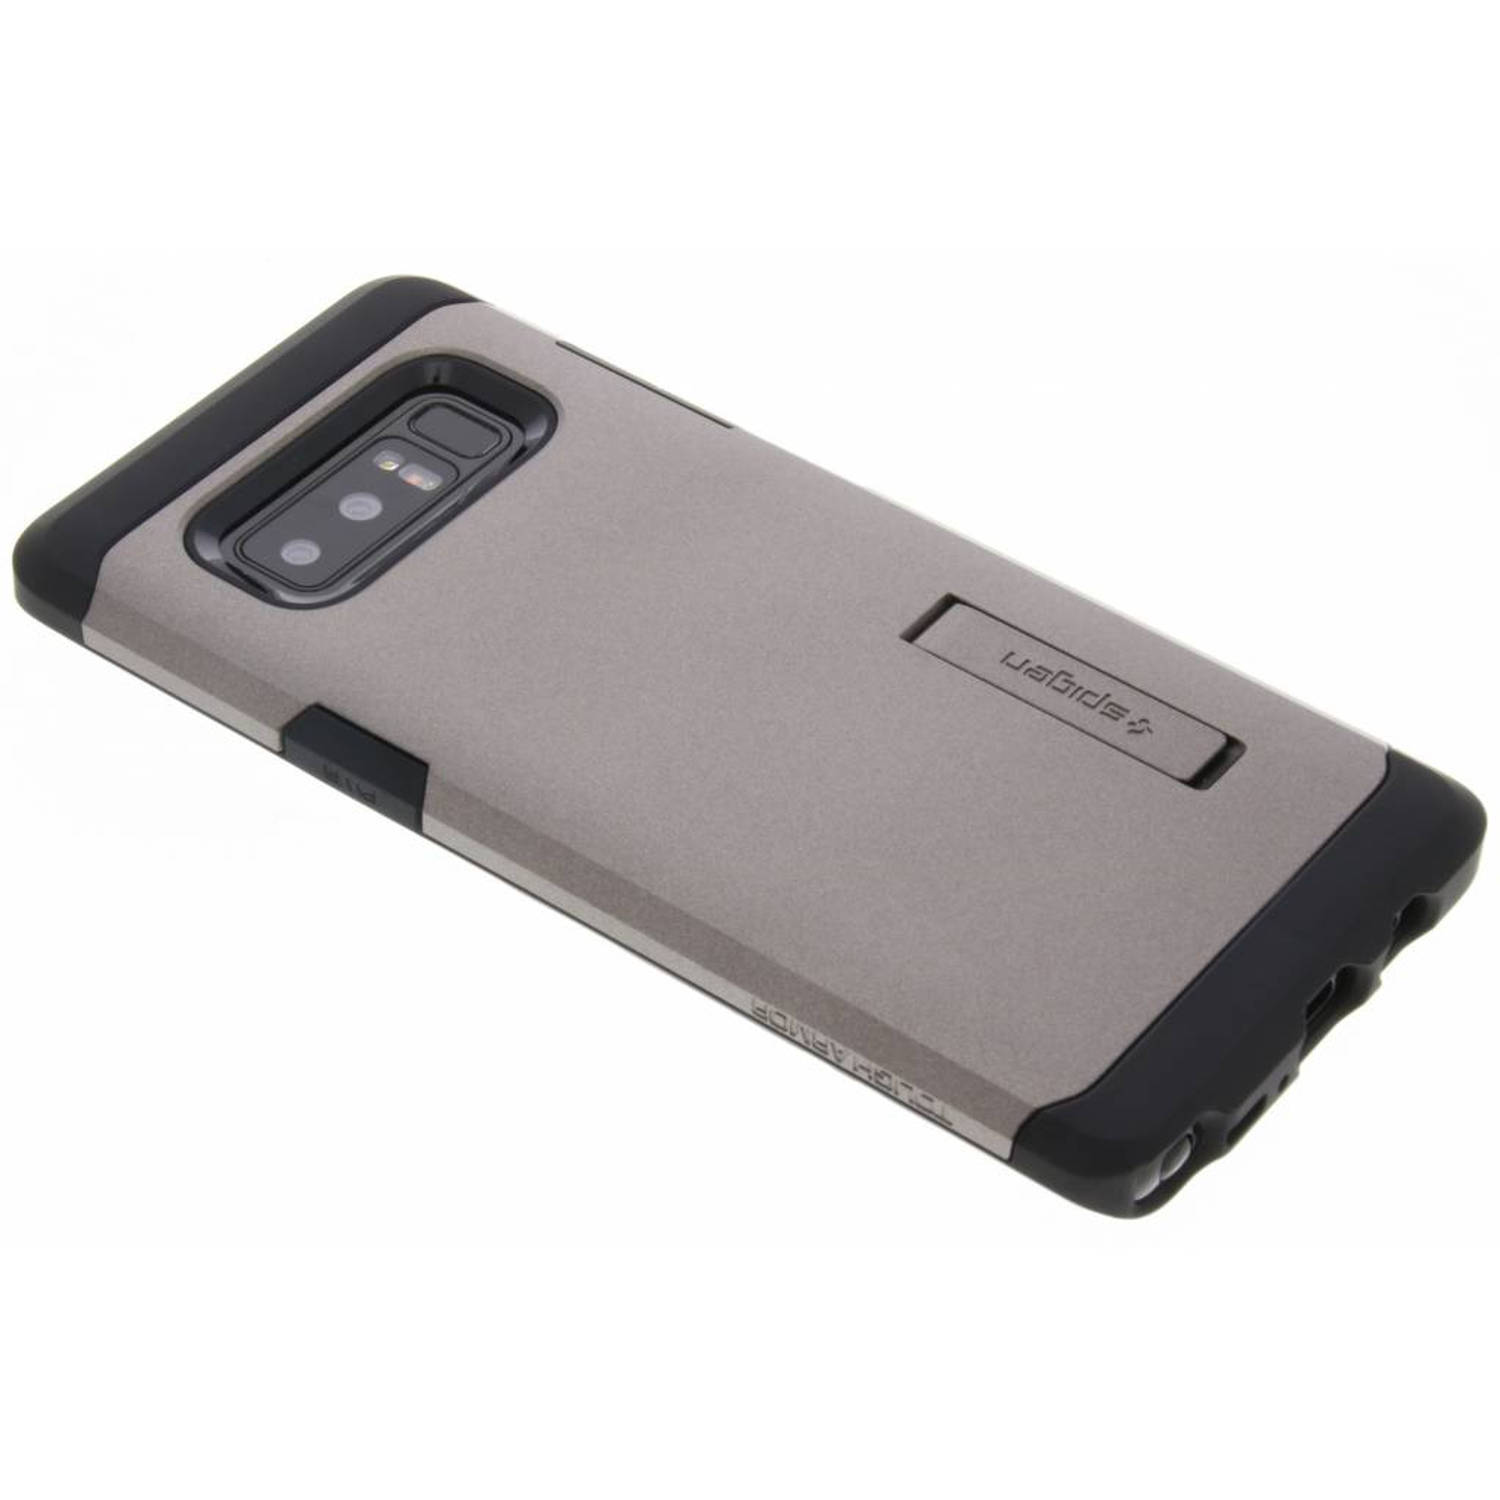 Grijze Tough Armor Case voor de Samsung Galaxy Note 8